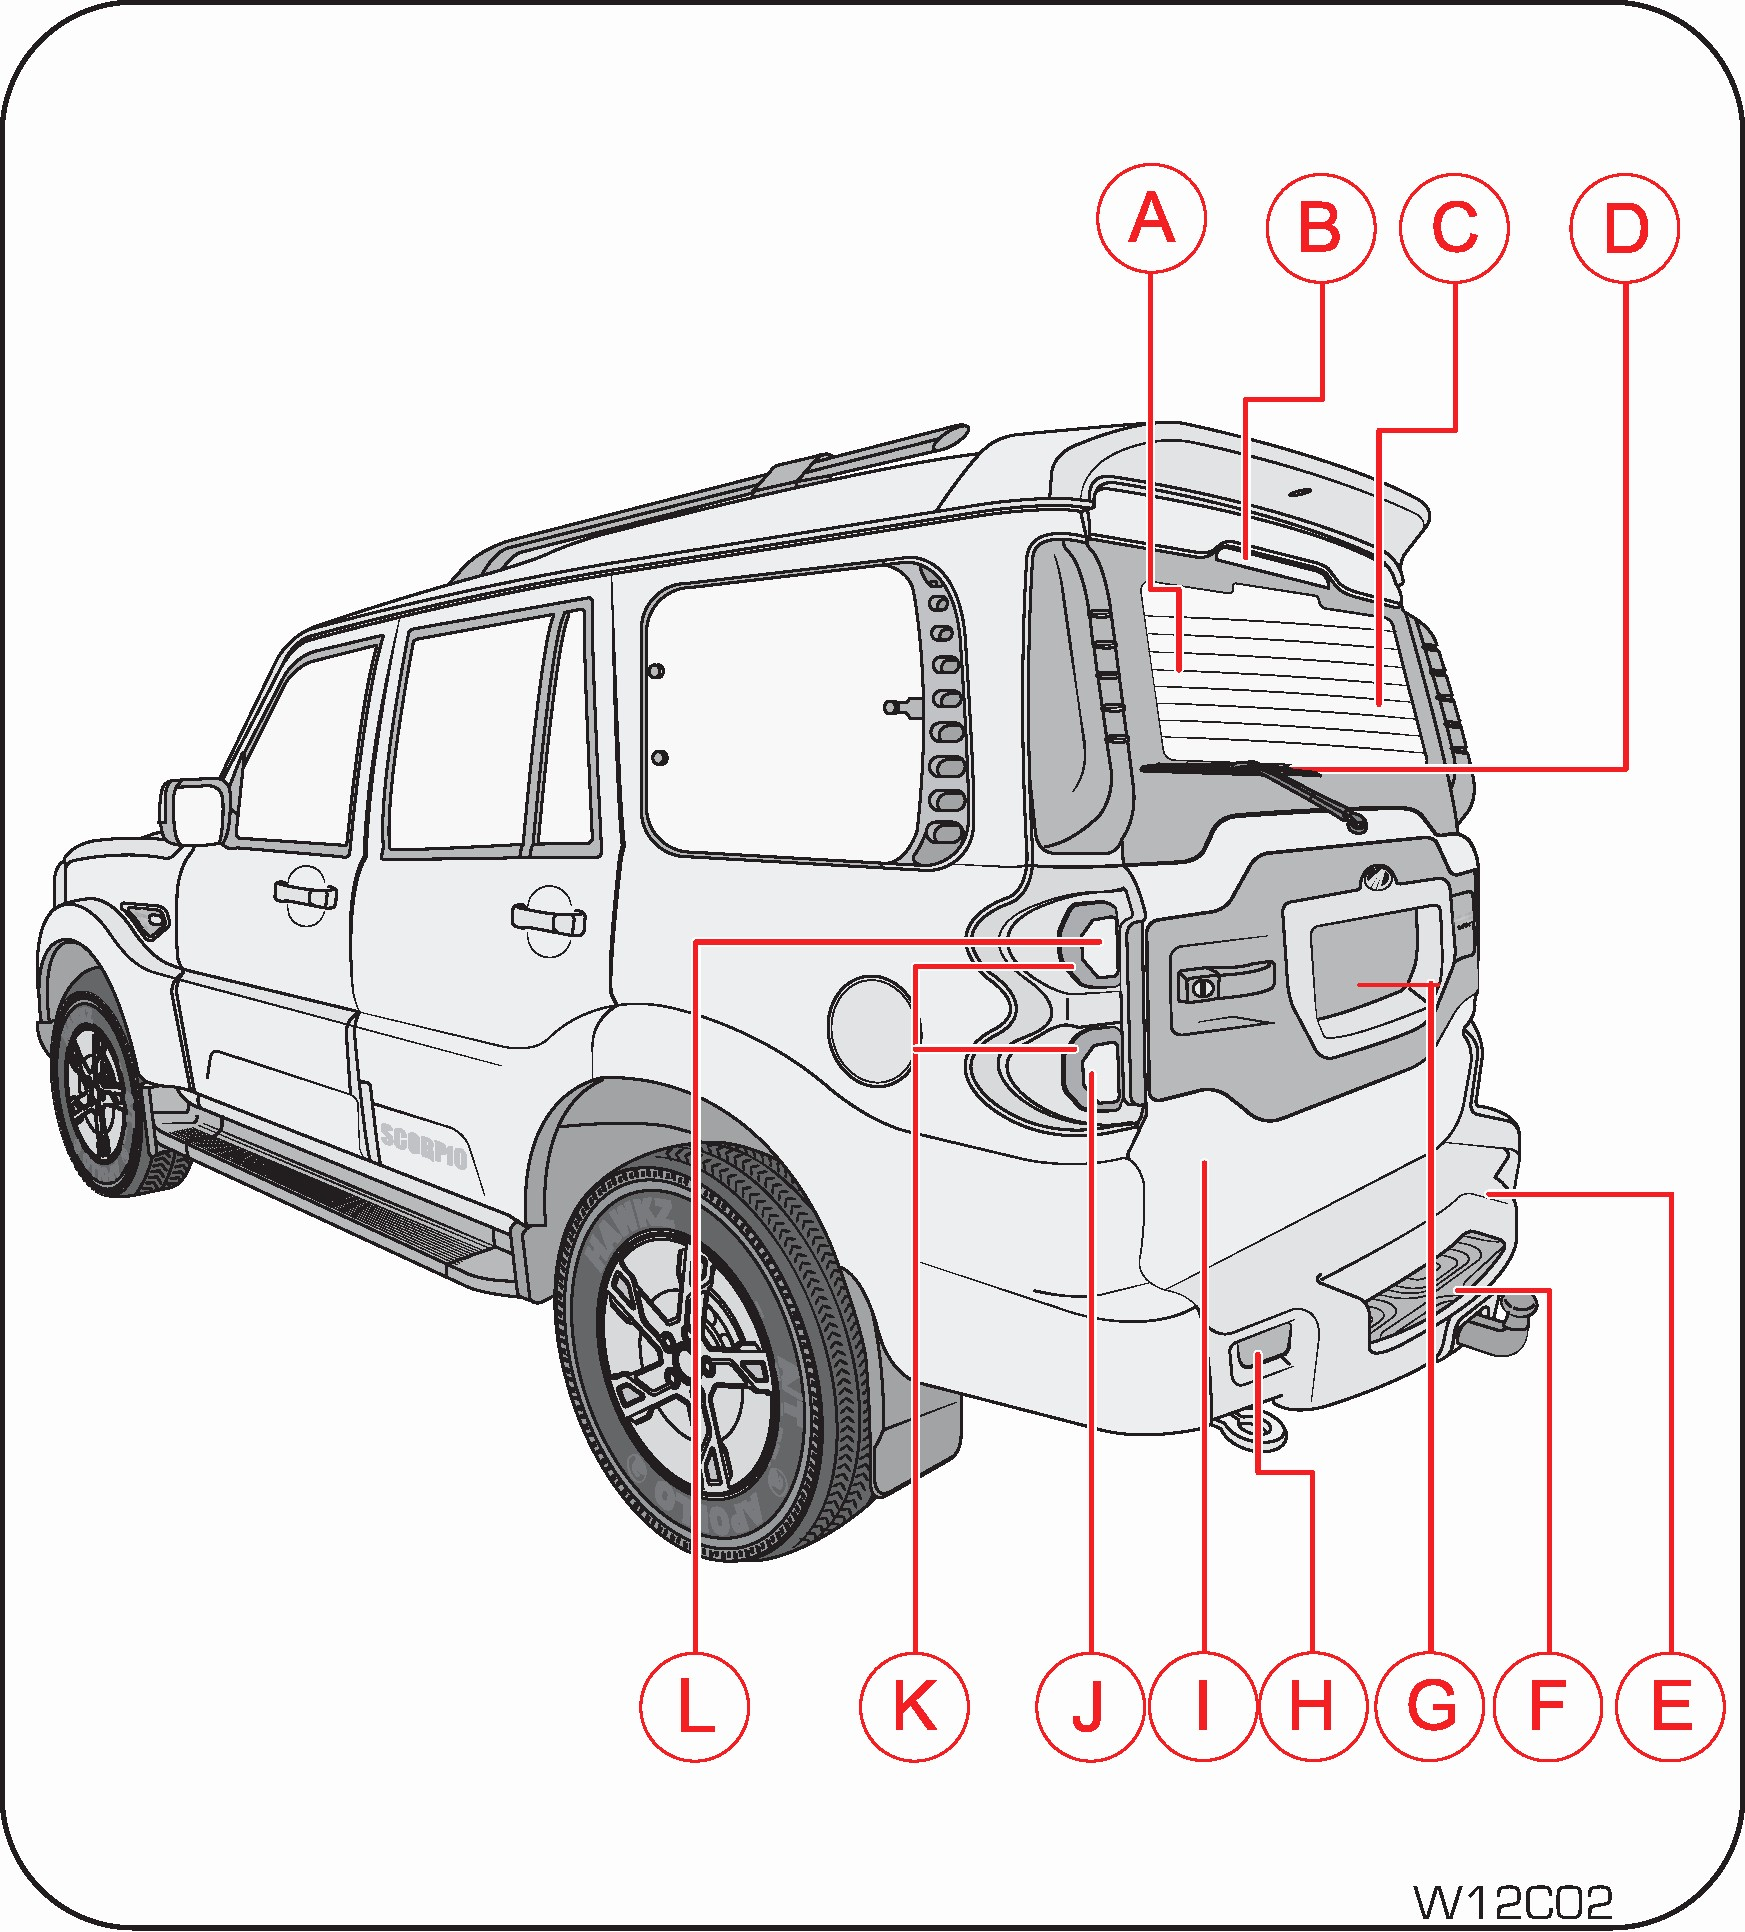 Diagram Of Car Exterior Parts Car Exterior Body Parts Diagram Beautiful Parts A Manual Car Of Diagram Of Car Exterior Parts